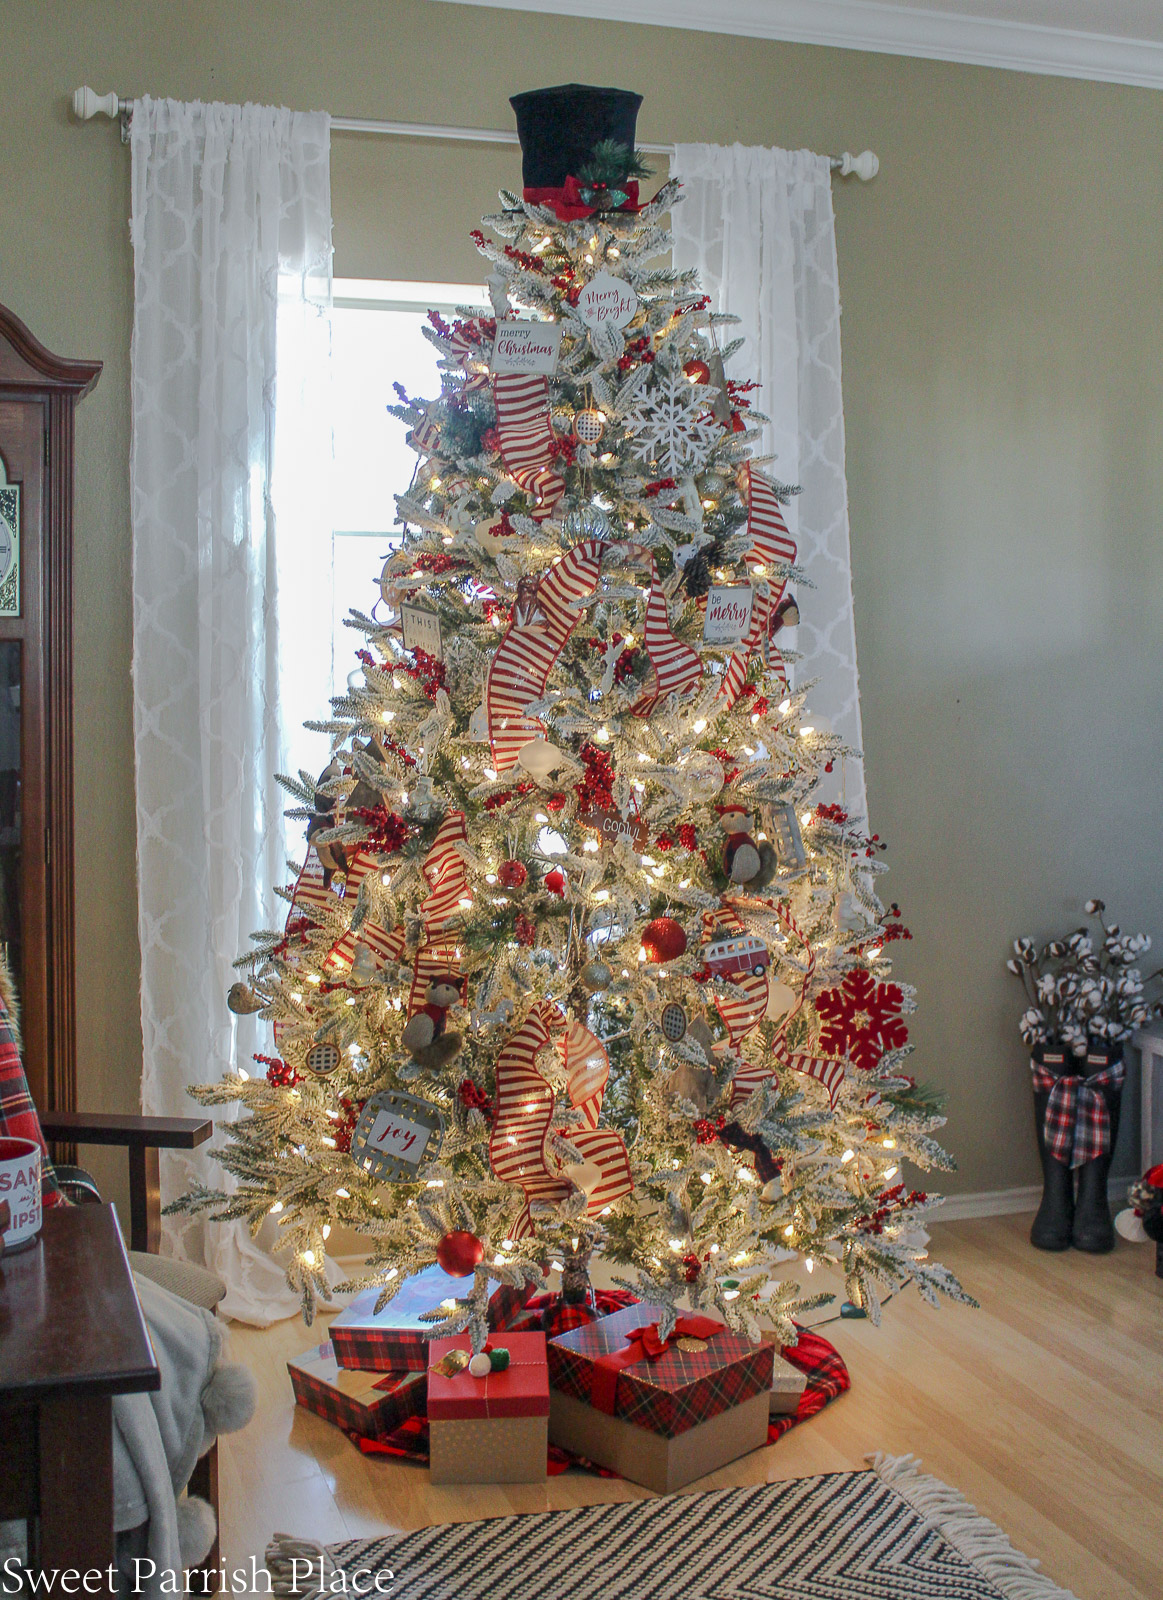 prairie house christmas tree with gifts underneath